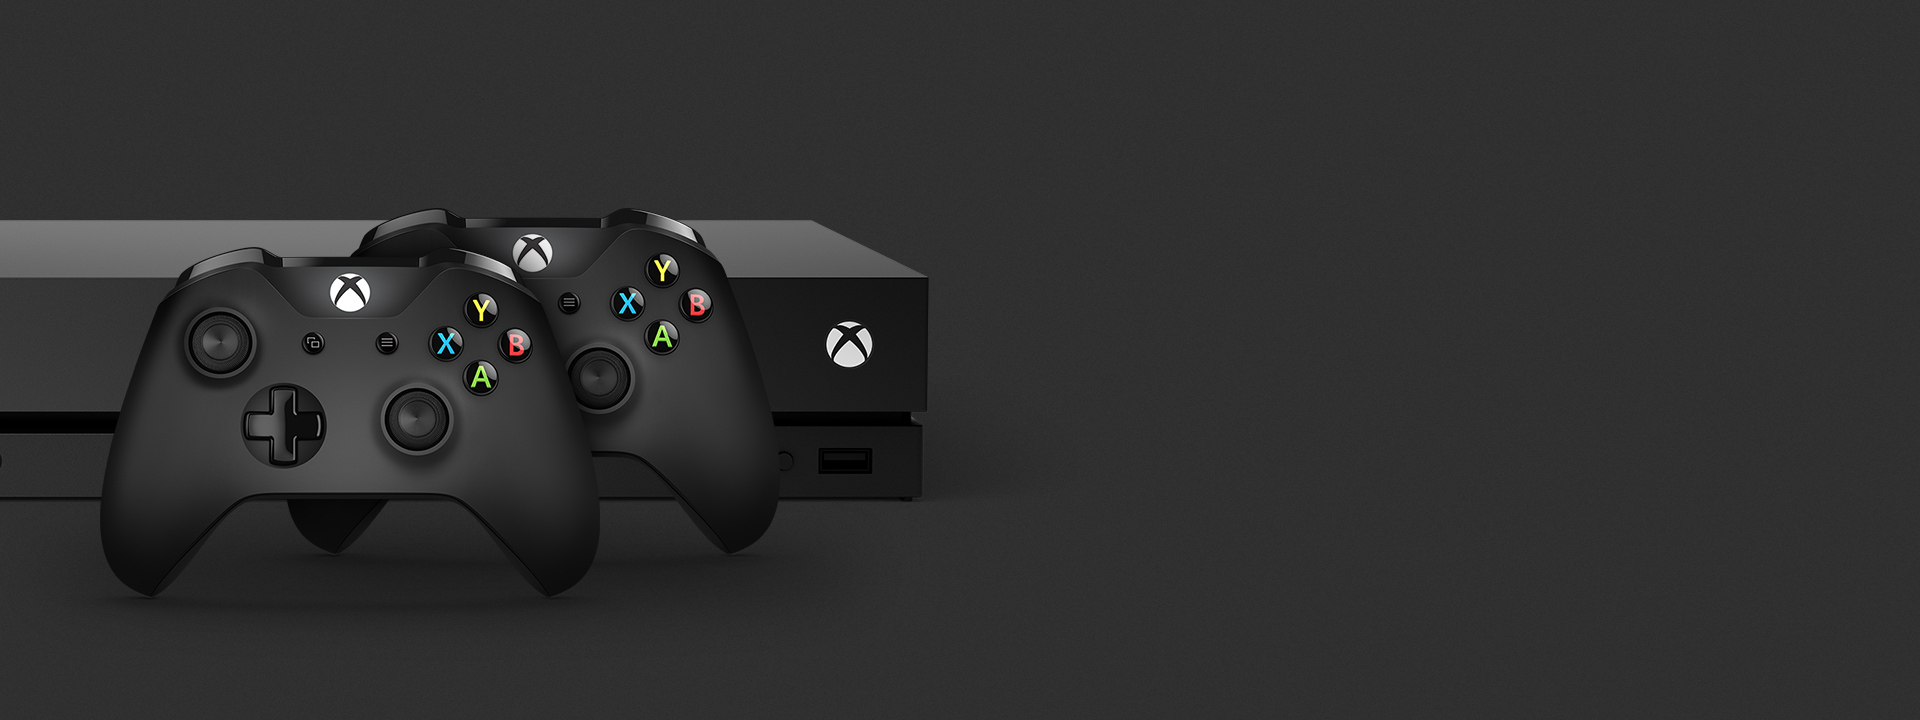 An Xbox One X sits in a dark space with two black Xbox Wireless Controllers